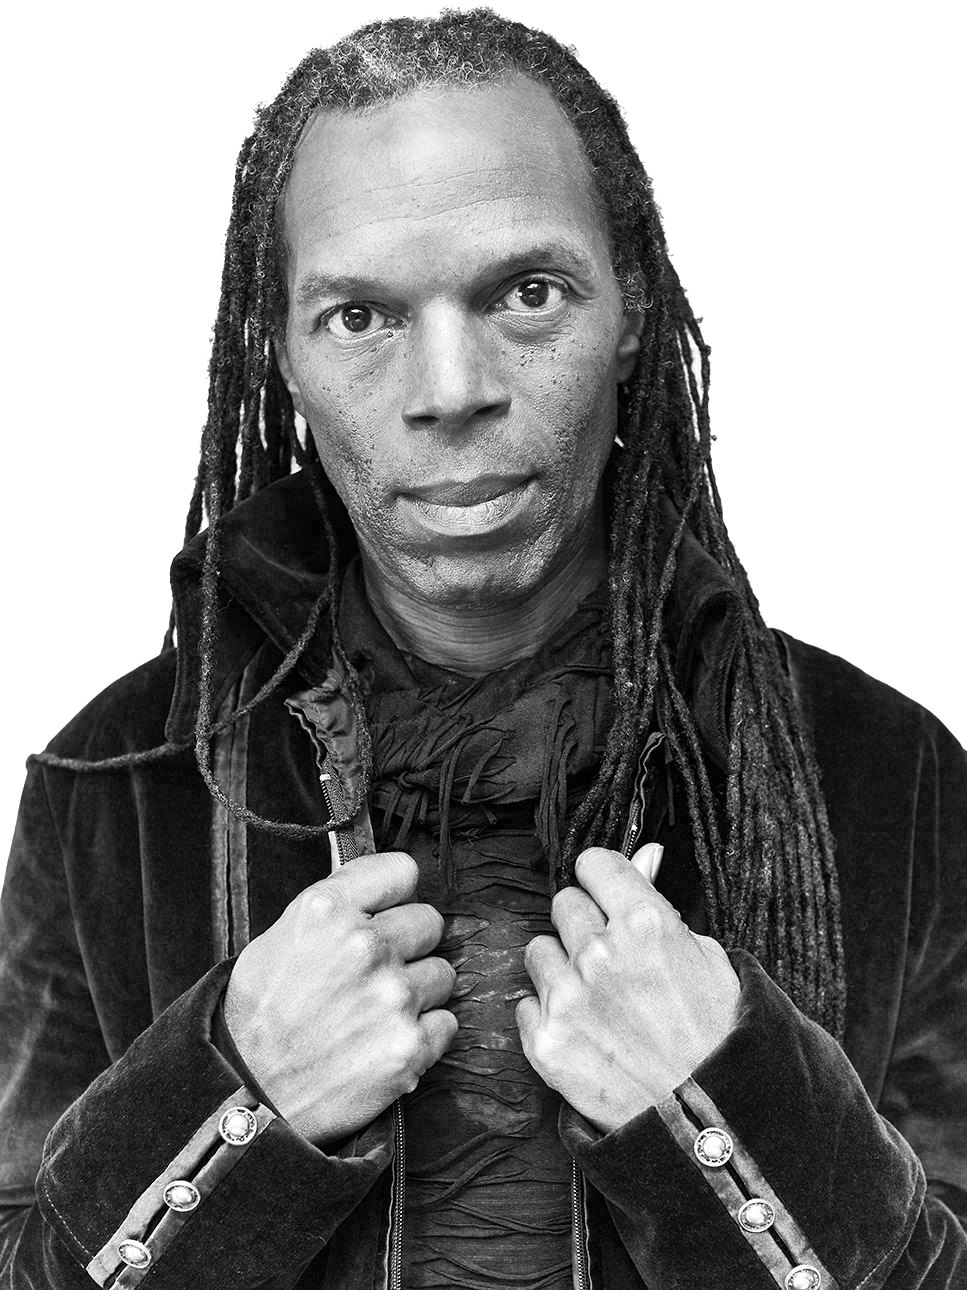 idp, ian davies, iandaviesphoto, photographer birmingham, commercial photographer birmingham, portrait photographer birmingham, event photographer birmingham, live event photographer, music photographer birmingham, Brum Creatives, celebrity photographer, Birmingham, photo studio birmingham, Ranking Roger, Ska, Punk, theatre, music, film, art, photography